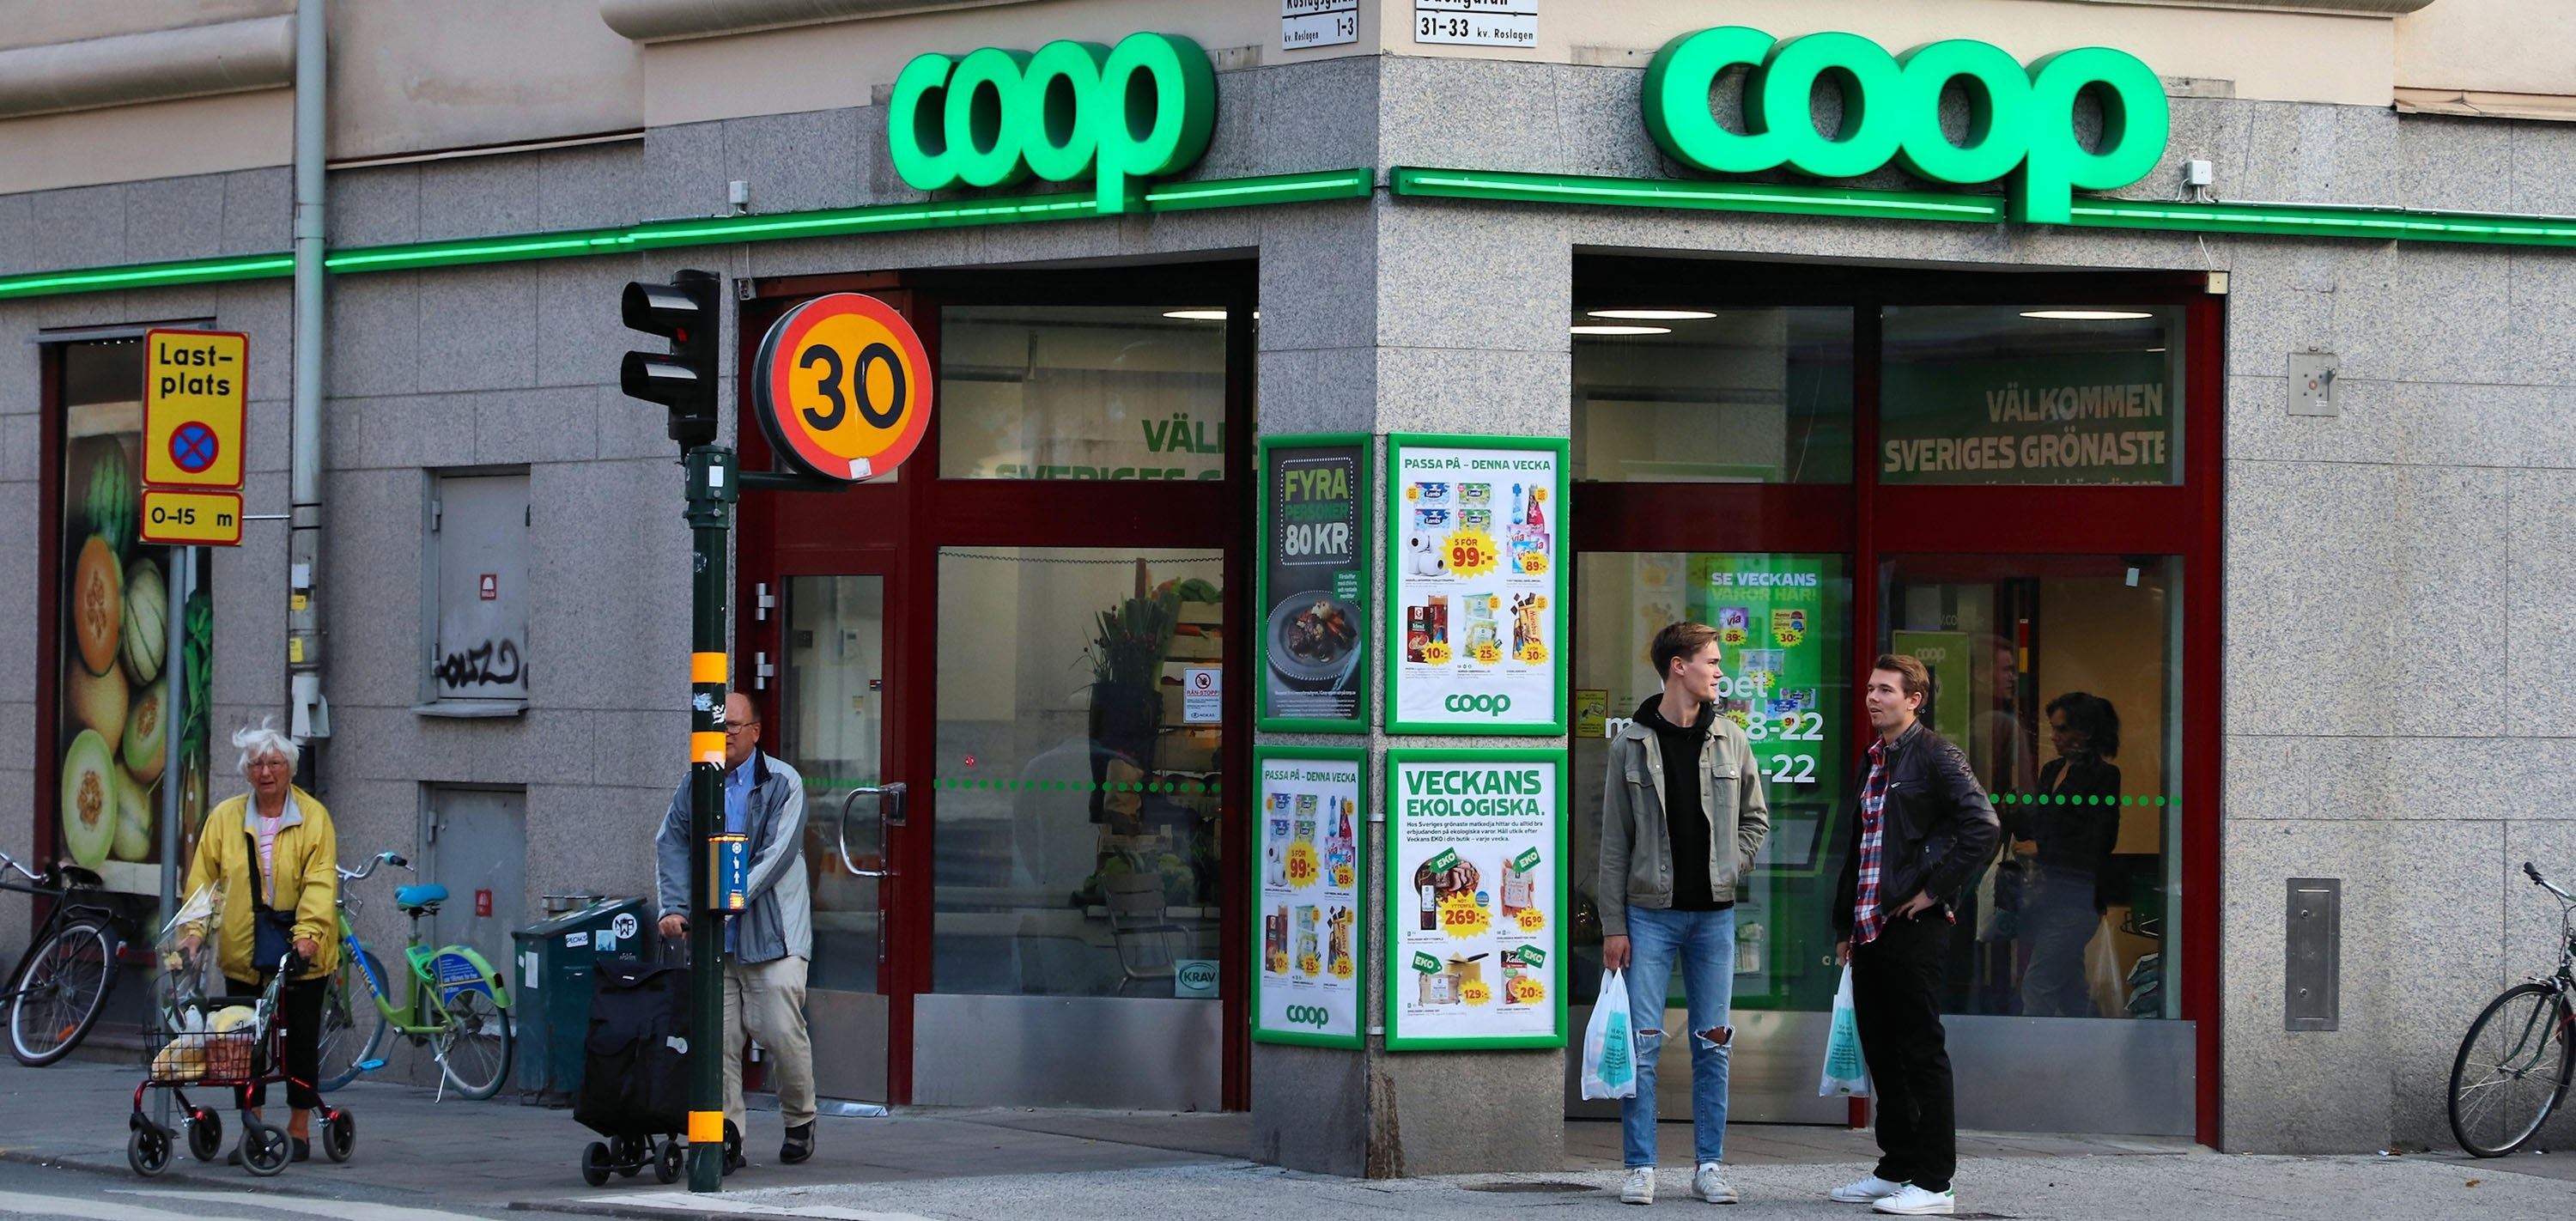 Coop store in Sweden. Photo: Tupungato/Dreamstime